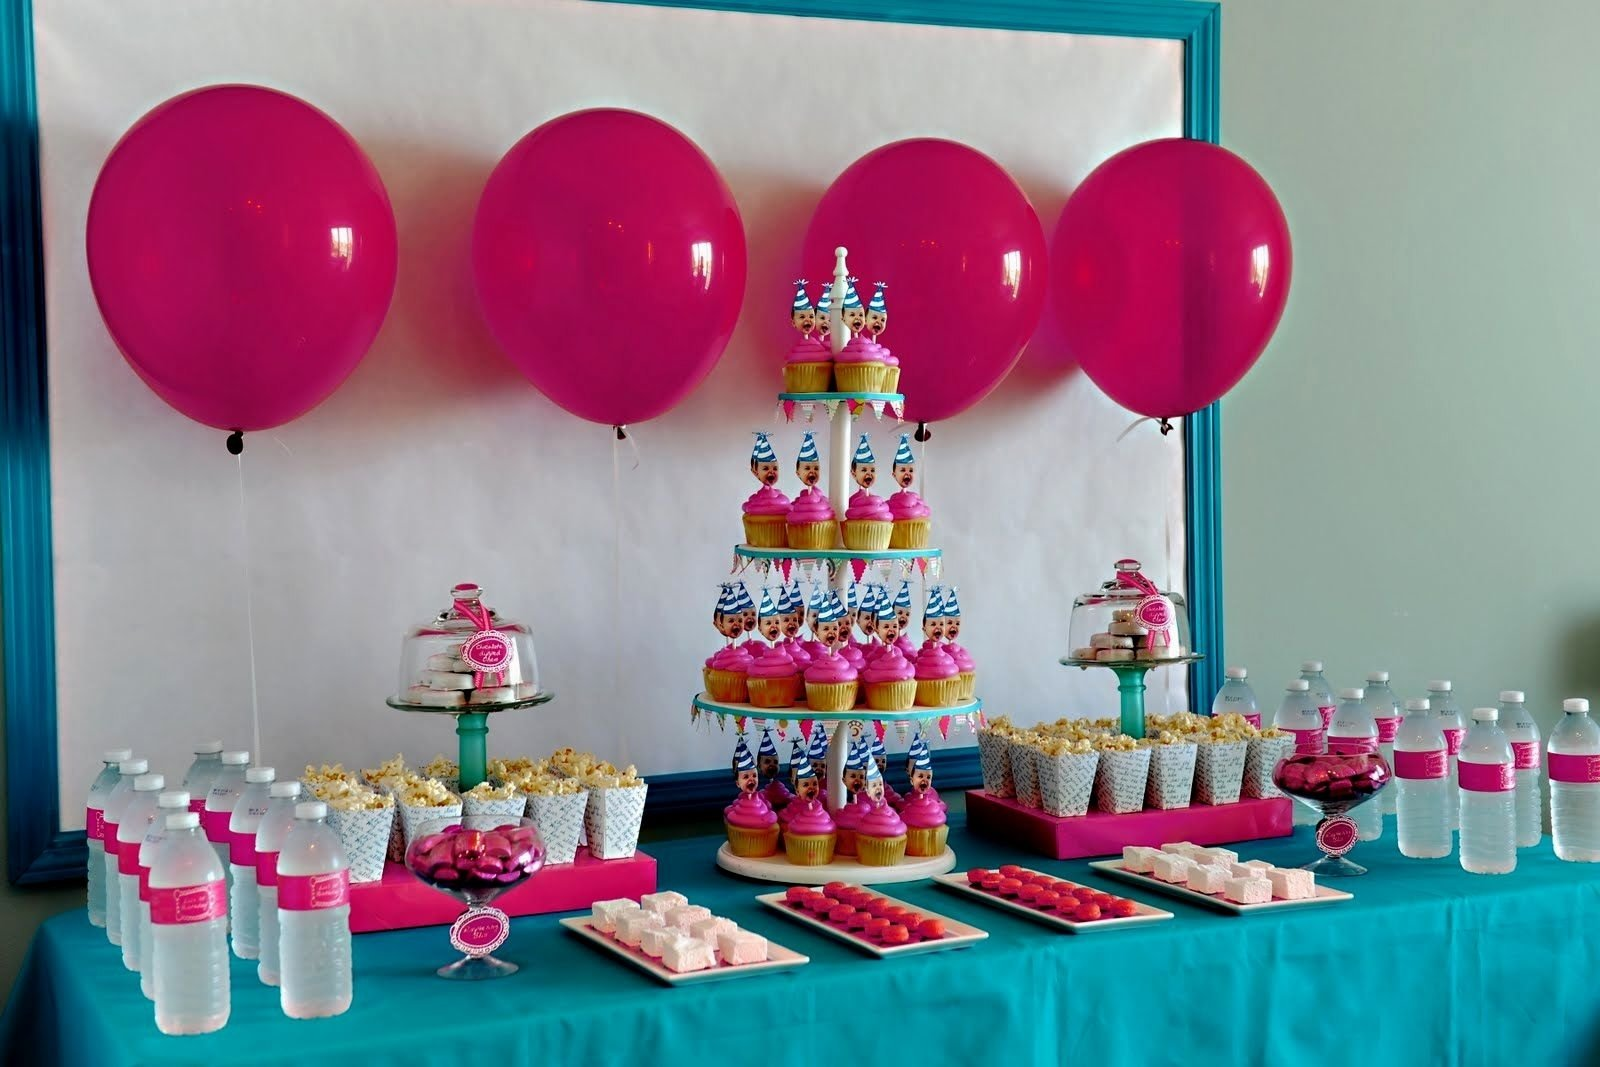 10 Great Birthday Party Ideas For 5 Year Old Girl 1st birthday party ideas for girl the minimalist nyc 3 2021